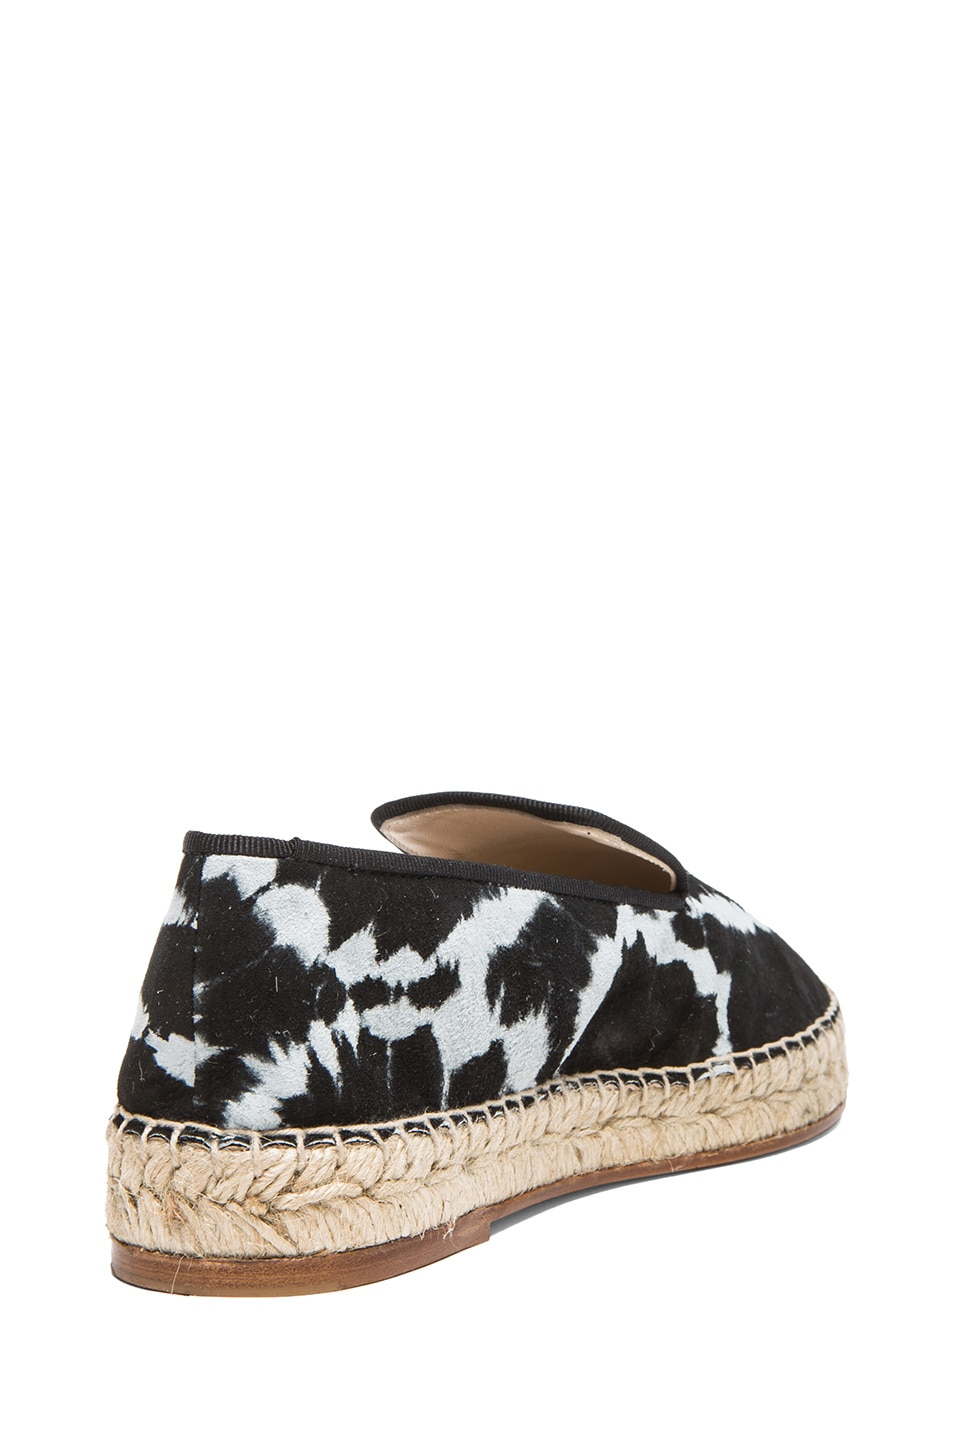 Image 3 of elysewalker los angeles Tie Dye Satik Suede Espadrilles in Black & White